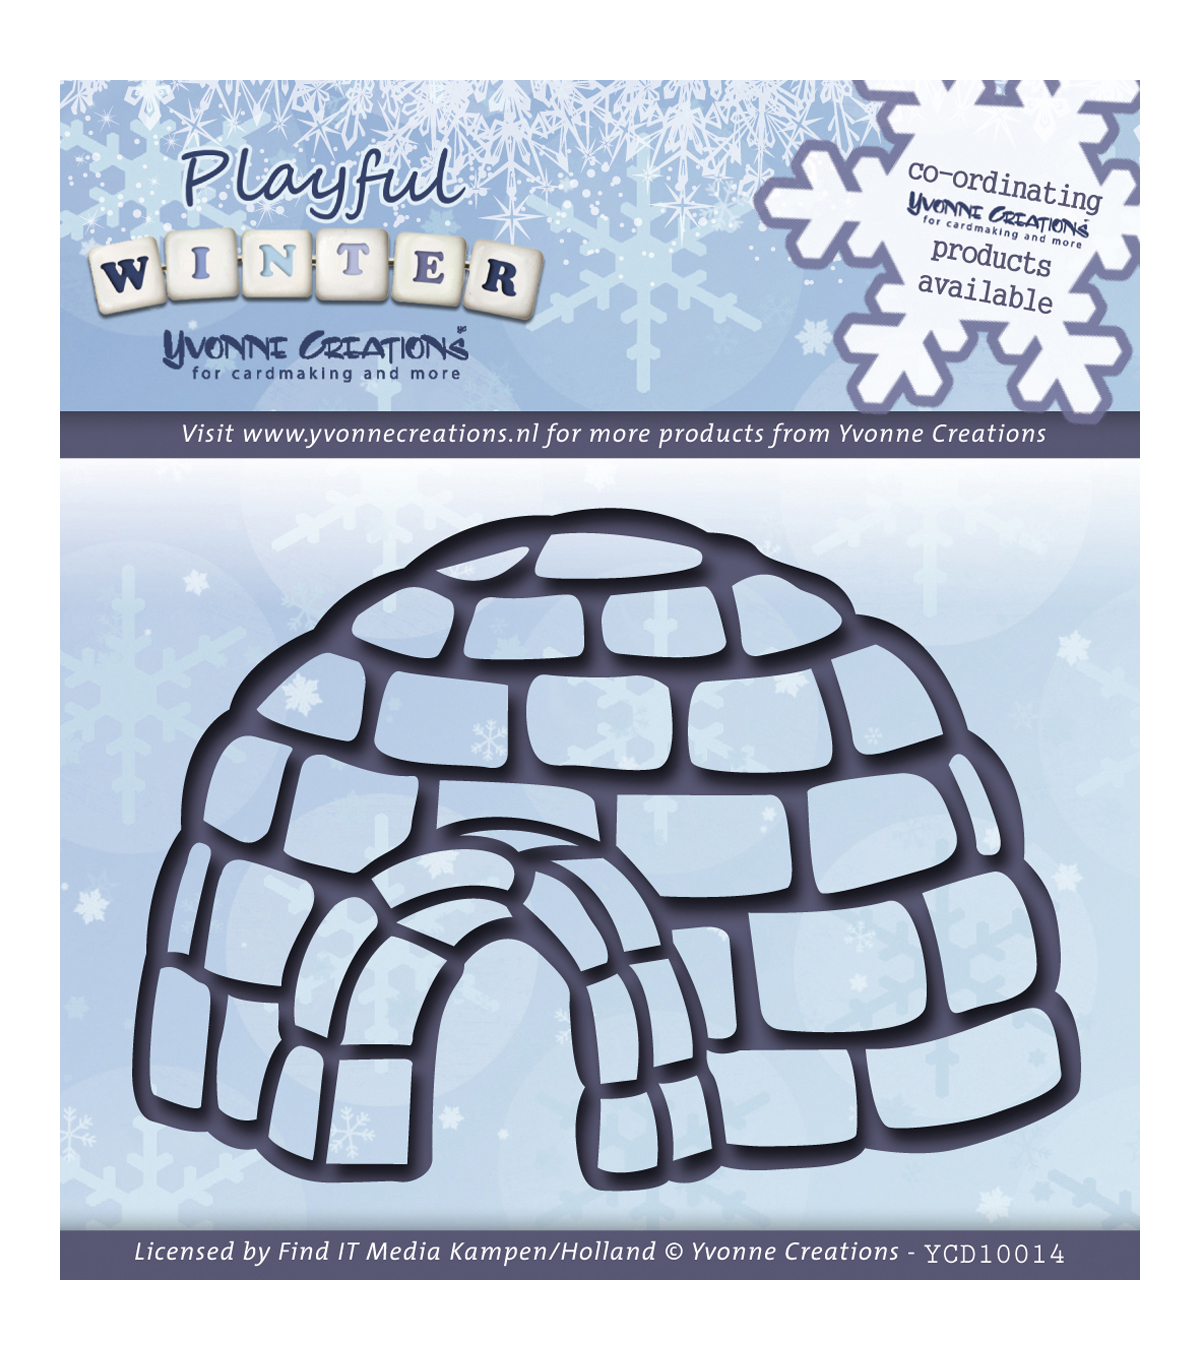 Yvonne Creations Playful Winter Die-Igloo